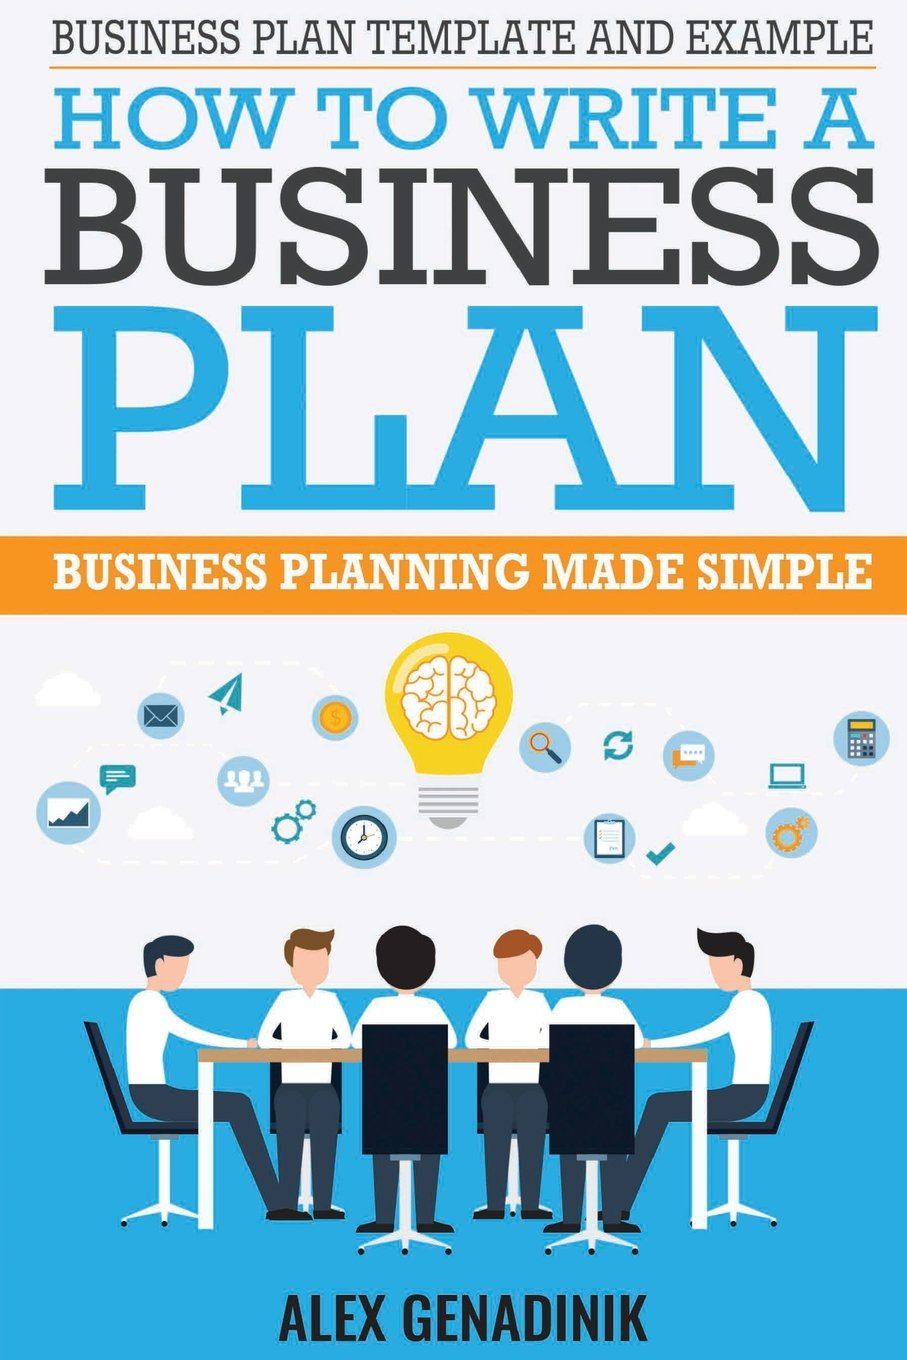 Business plan template and example how to write a business plan business plan template and example how to write a business plan business planning made simple alex genadinik 9781519741783 amazon books friedricerecipe